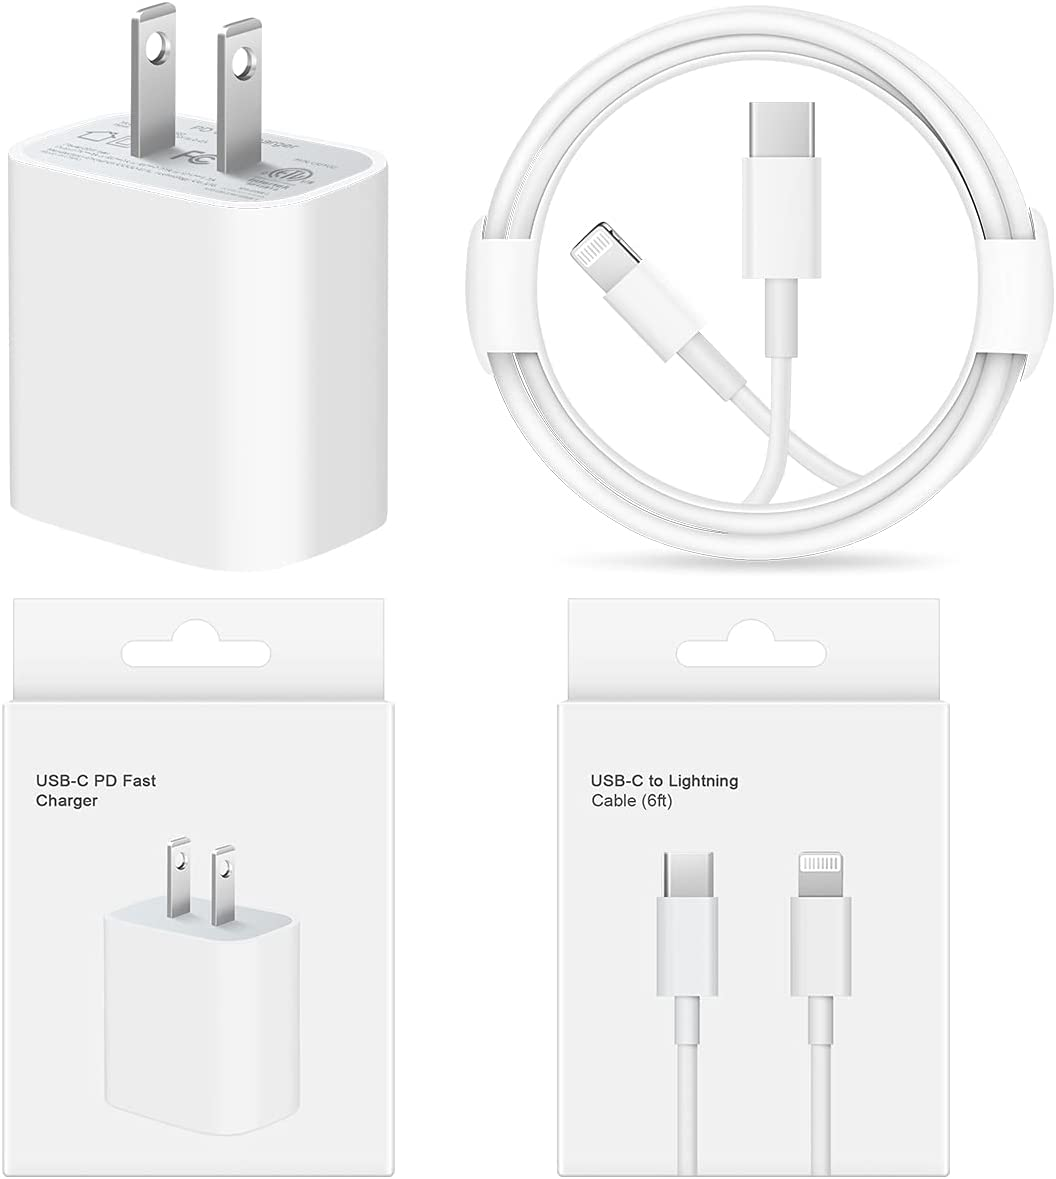 iPhone Fast Charger【Apple MFi Certified】 20W PD Type C Power Wall Charger with 6FT USB C to Lightning Cable Compatible iPhone 12/12 Mini/12Pro/12 Pro Max/11/11 Pro Max/Xs Max/XR/X, iPad Pro and More